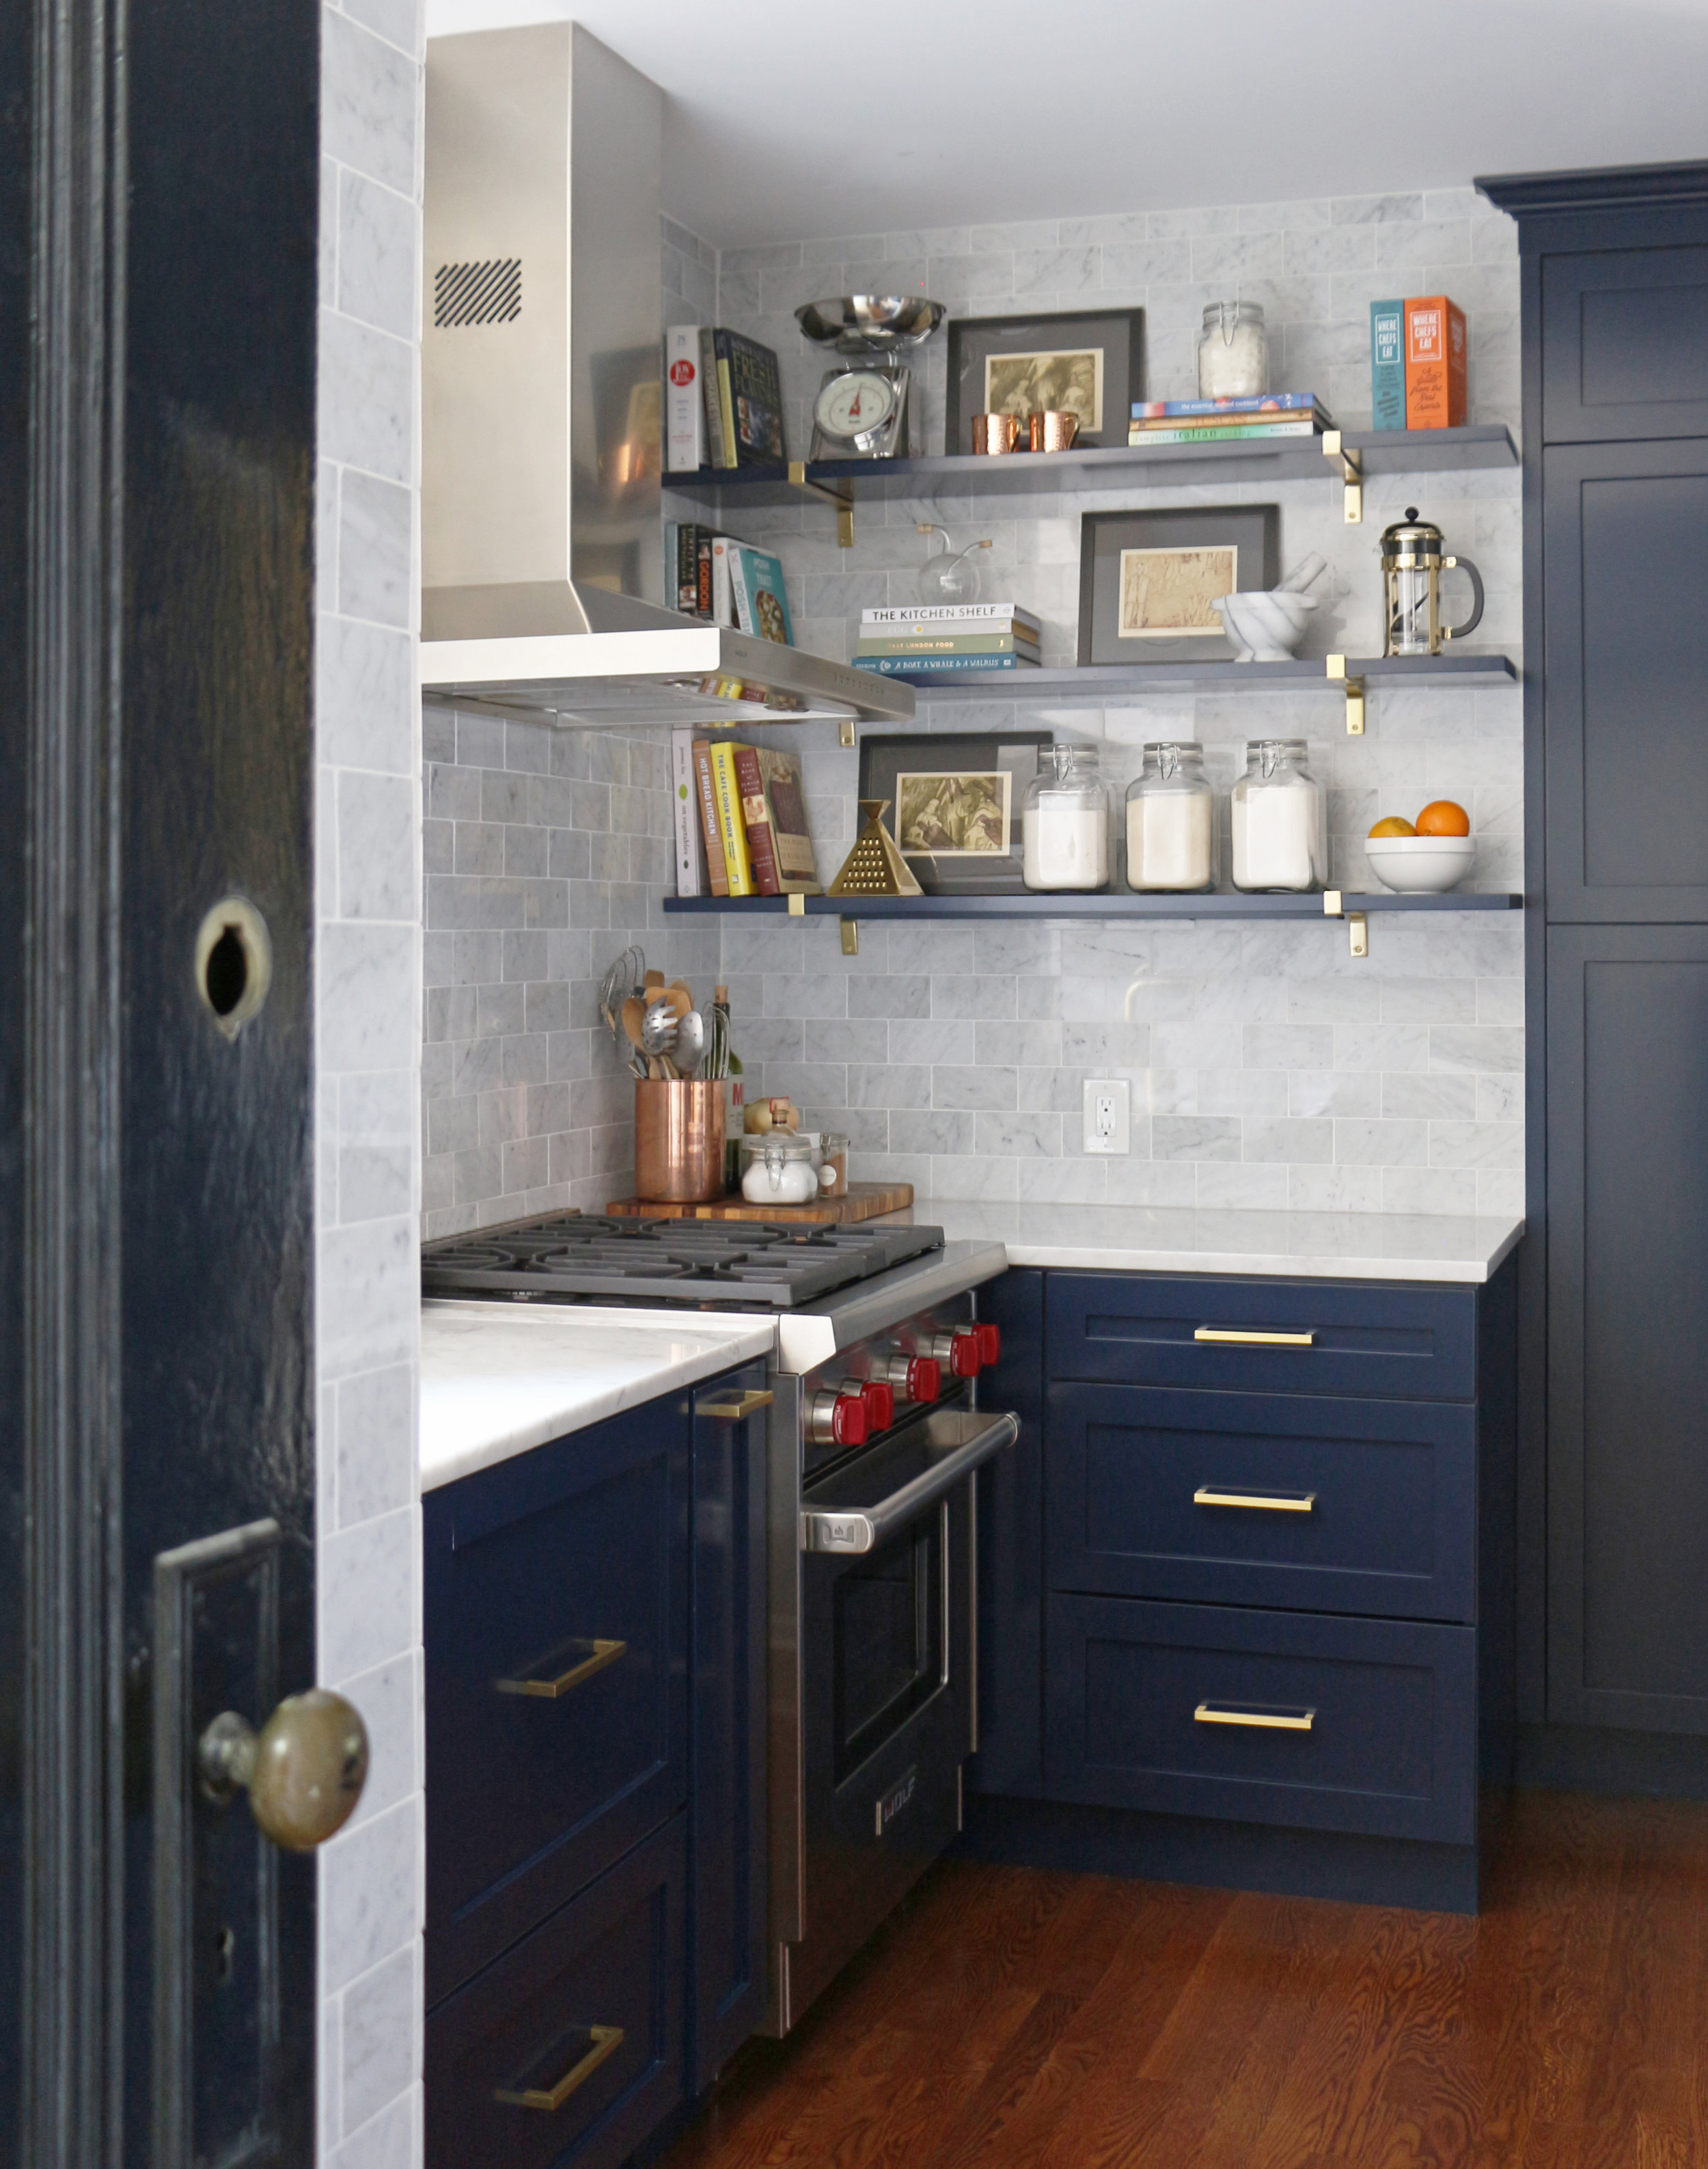 Trenton-Kitchen-1.jpg